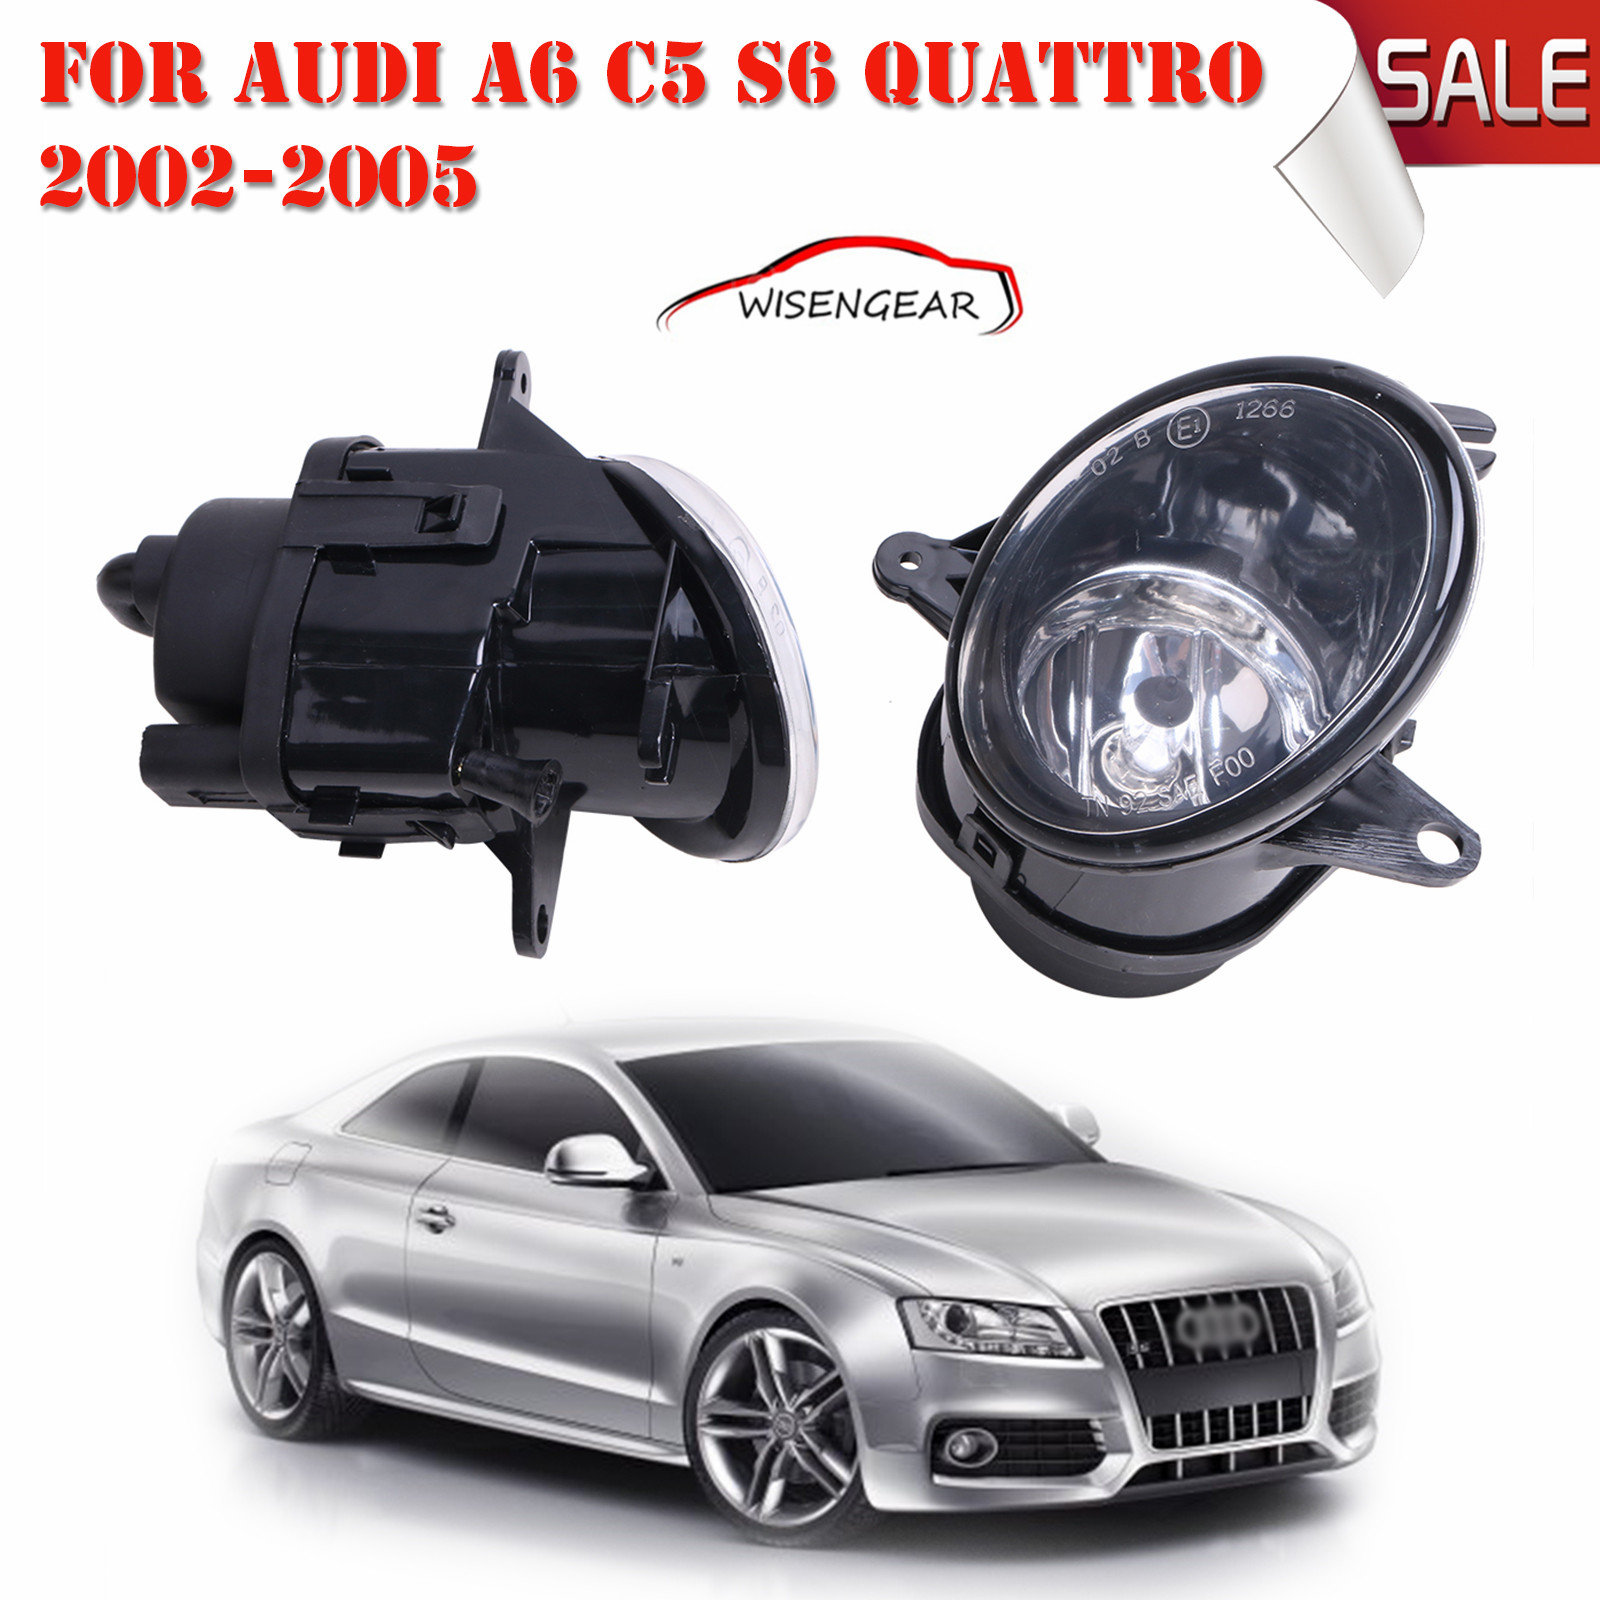 Car Light Clear Lens Front Right+Left Fog Light Lamp With H7 Bulbs For Audi A6 C5 S6 Quattro 2002-2005 C/5 1pcs right side car front bumper clear lens fog light driving lamp with bulb for volvo s80 2007 2012